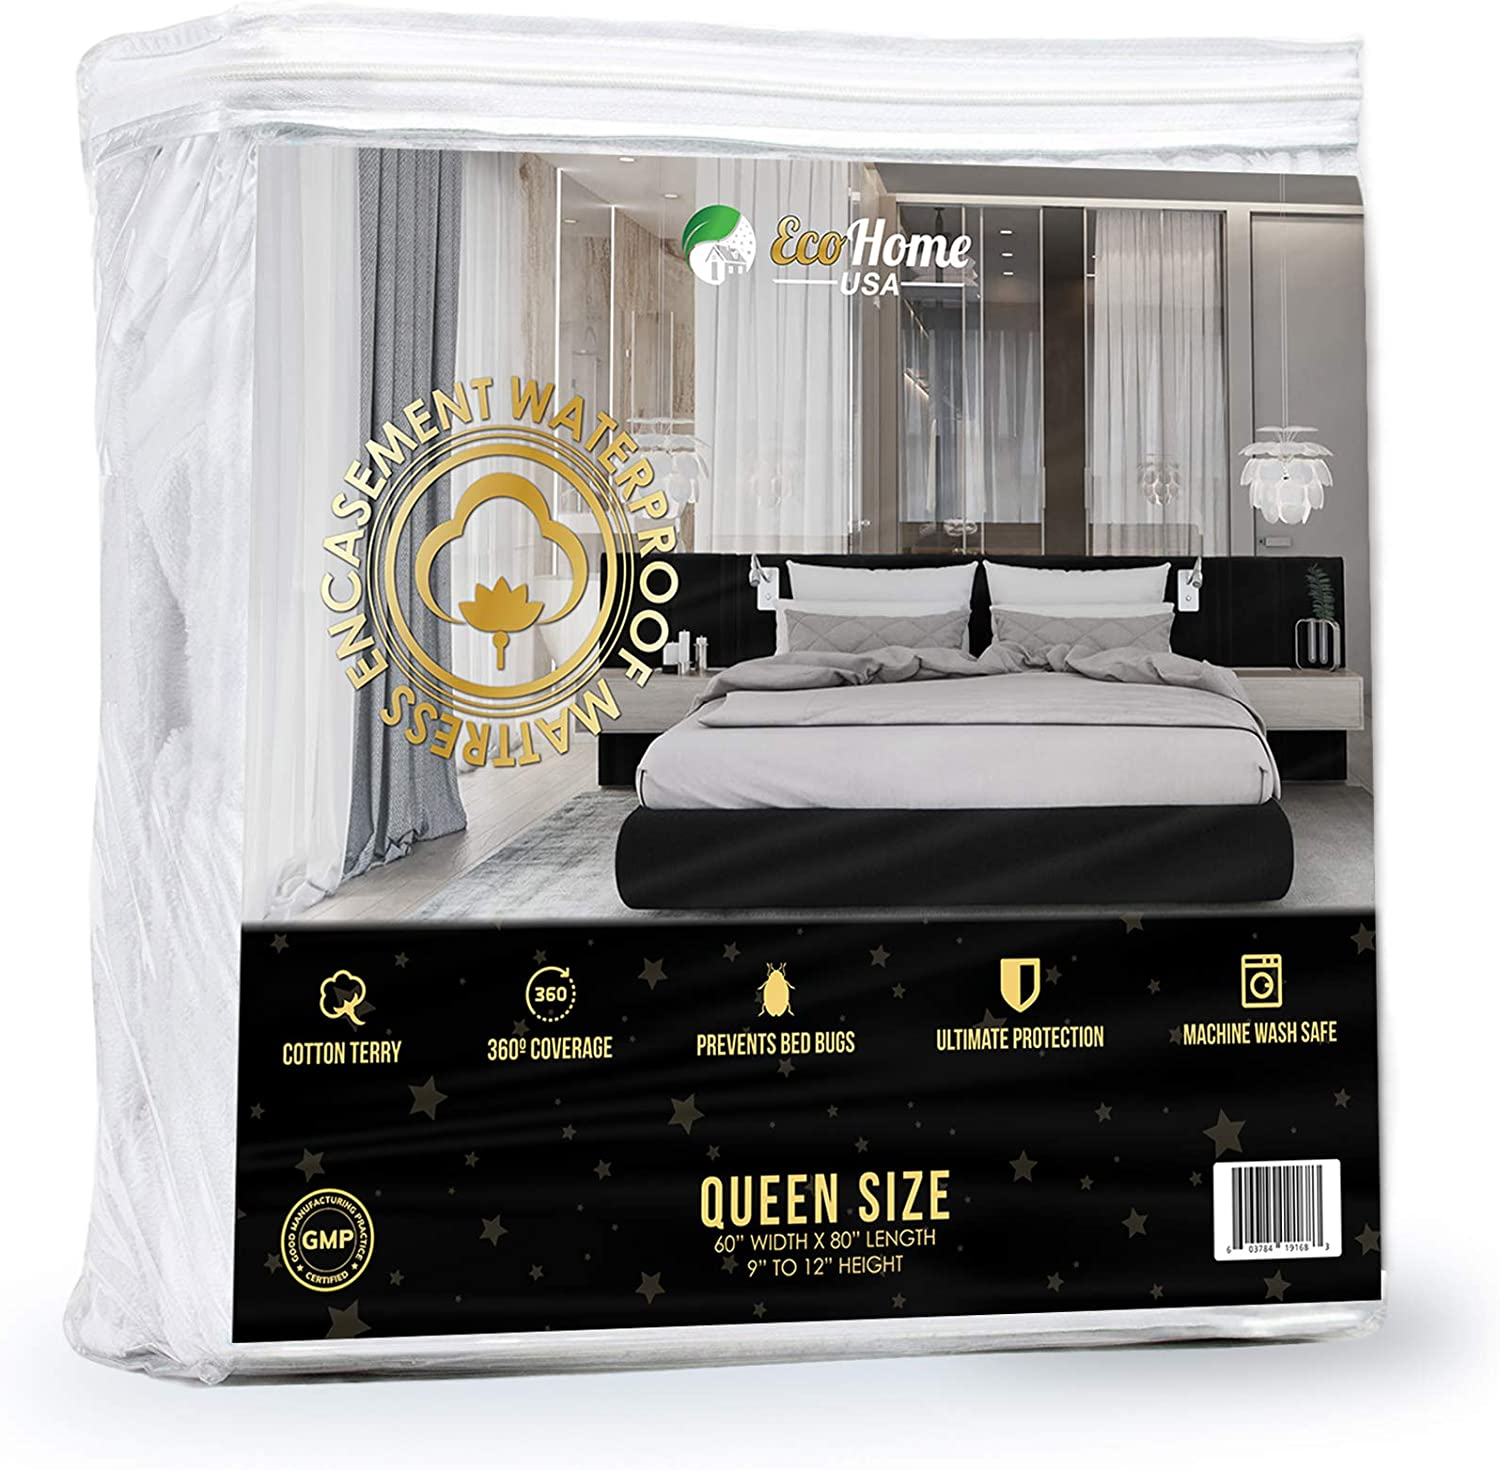 Waterproof Mattress Encasement Cover Queen Size Soft, Breathable Cotton Terry Fabric   Helps Prevent Bed Bugs, Dust Mites, Bacteria, Allergens   Repels Urine and Liquids   Ultra-Quiet